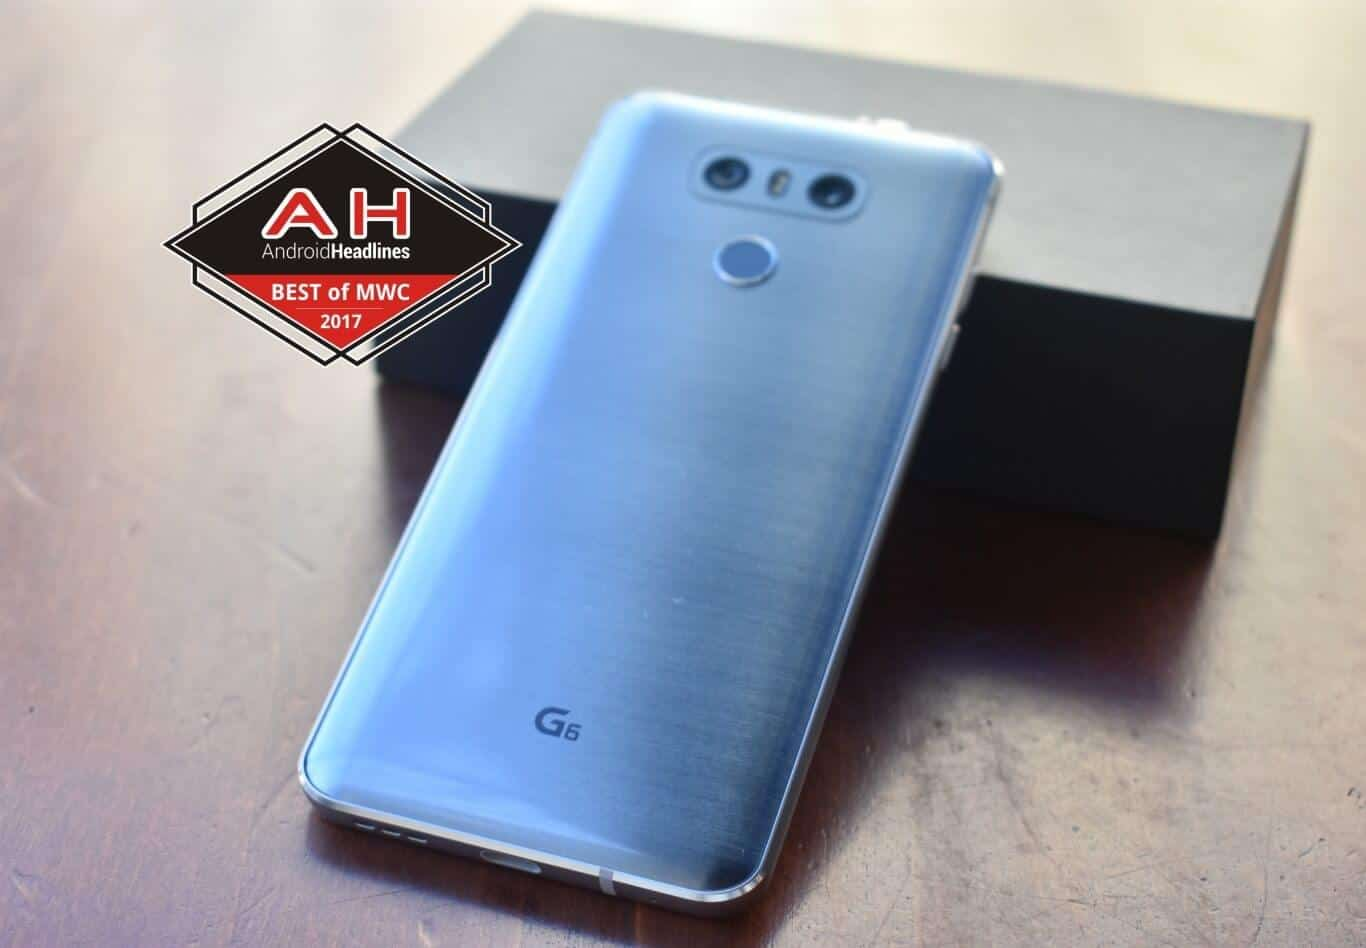 LG G6 Best of MWC 2017 1